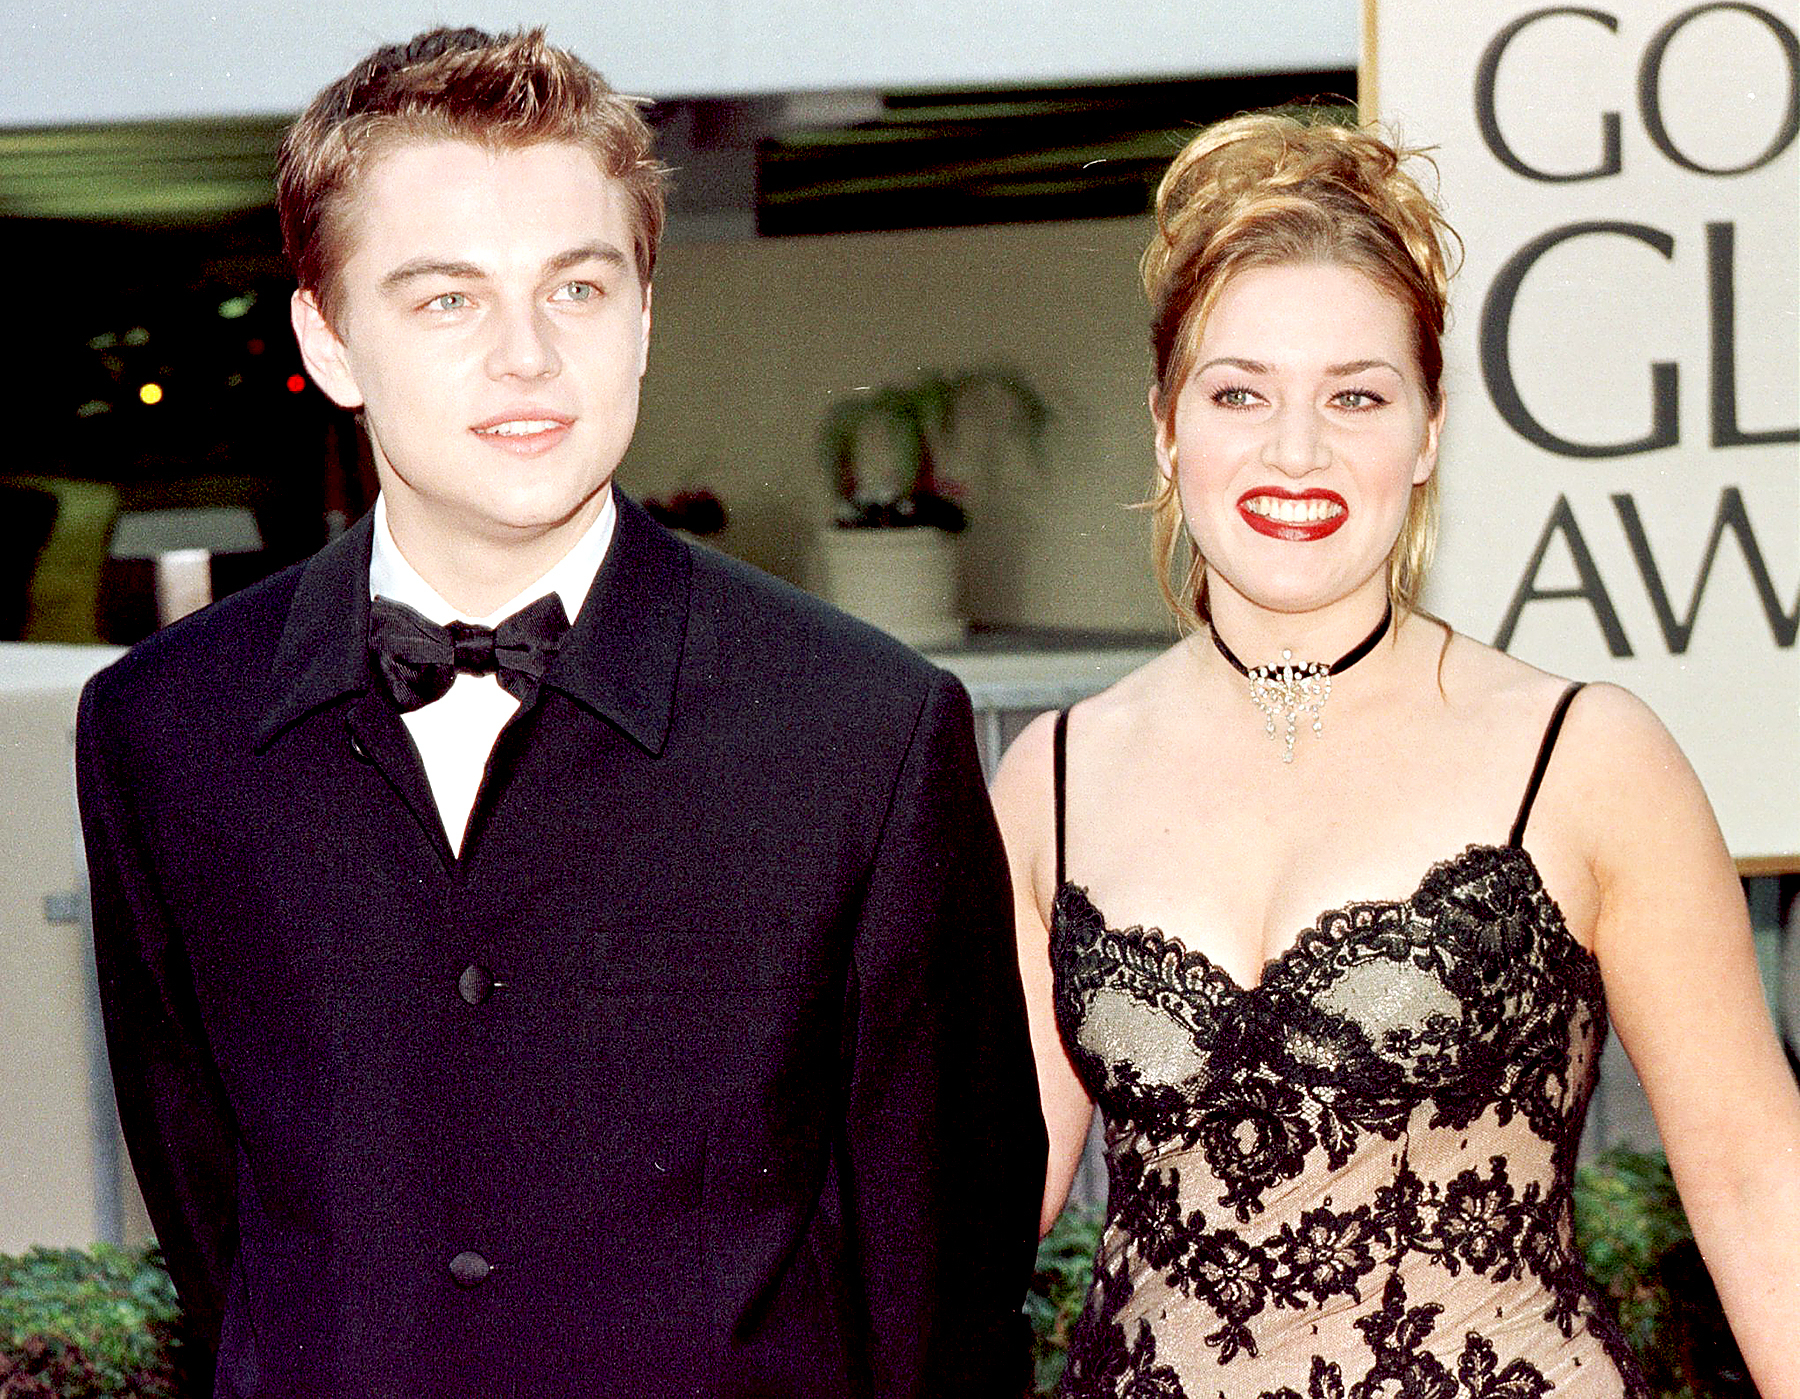 Leonardo DiCaprio arrives with Kate Winslet for the 55th Annual Golden Globe Awards at the Beverly Hilton, January 18,1998 in Beverly Hills, CA.